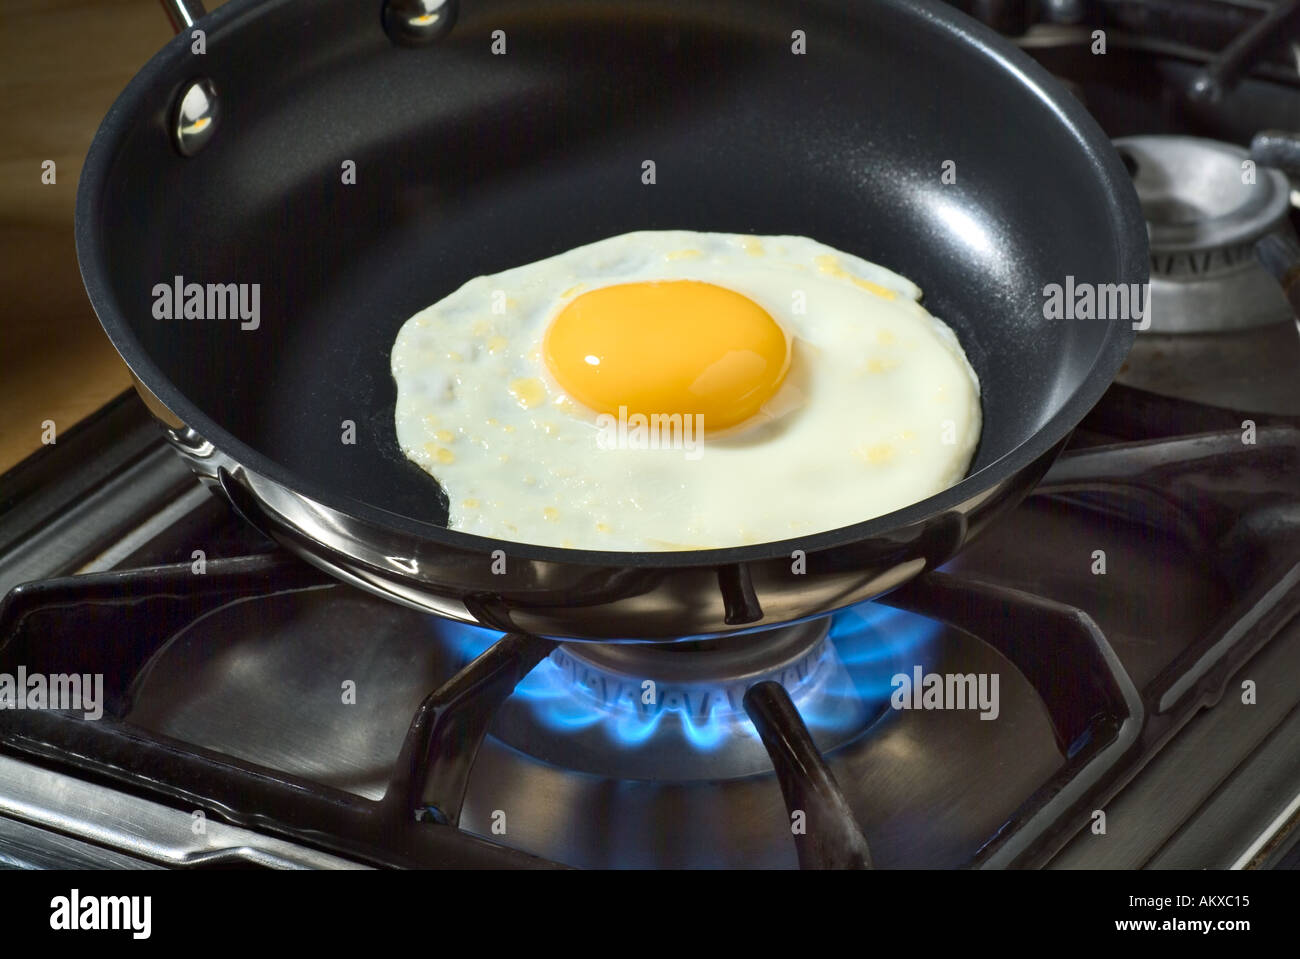 Frying an Egg in a Teflon Coated Pan - Stock Image